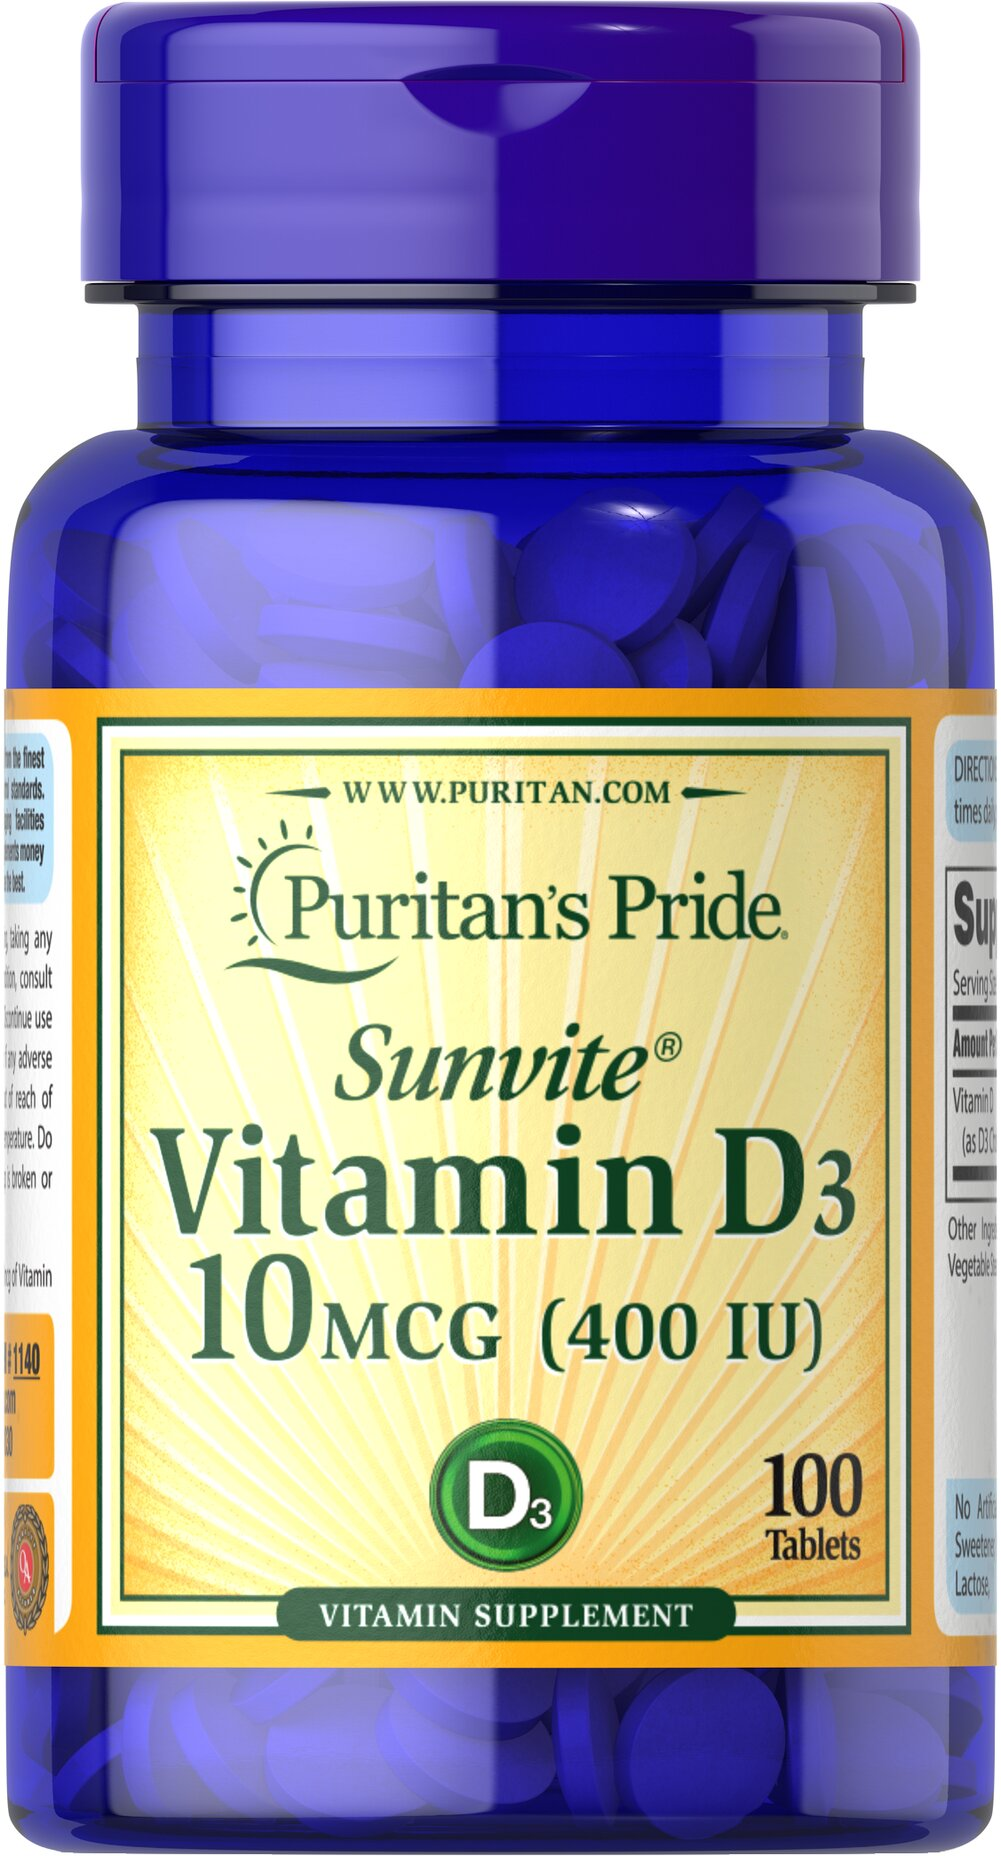 Vitamin D3 400 IU <ul><li> Supports Bone and Immune System Health**</li><li>Vitamin D3 is a more potent and bioavailable form compared to D2.<br /></li><li> As an essential nutrient, Vitamin D is important for optimal health.** </li><li>Vitamin D assists Calcium in bone maintenance and plays a role in immune system health.**</li></ul> 100 Tablets 400 IU $5.49